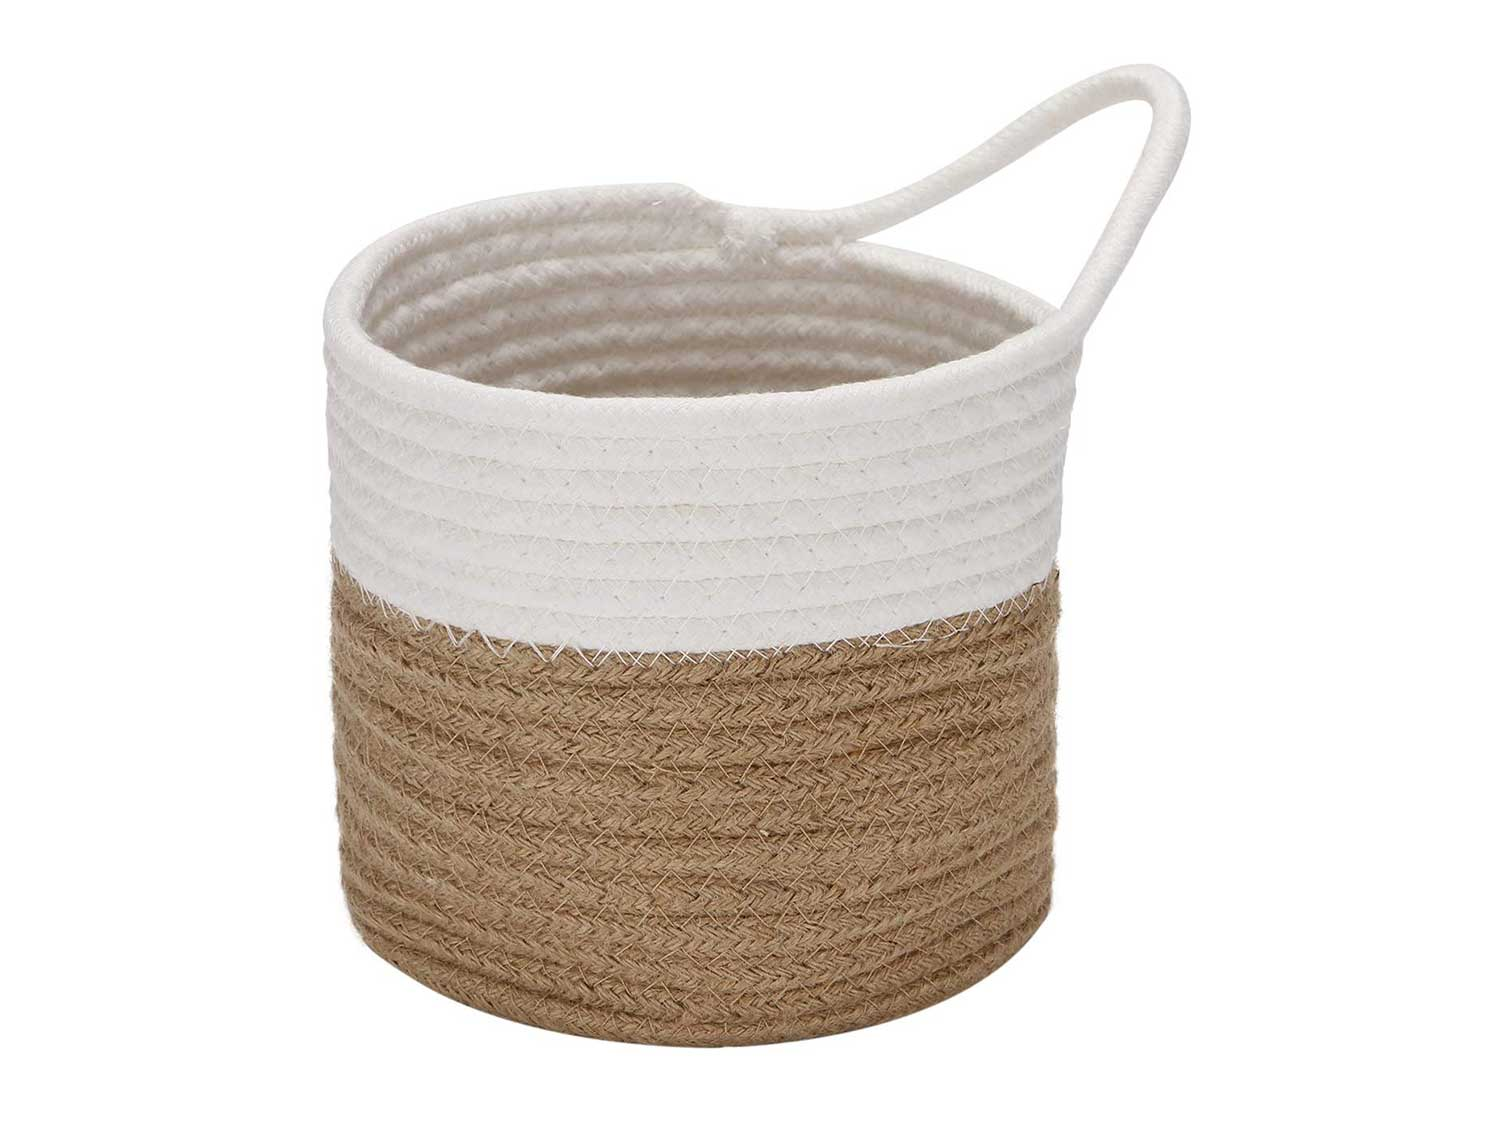 Sea Team Hanging Cotton Rope Baskets, 6.7 Inches Small Woven Storage Basket, Bike Hang Bag, Fabric Planter, Pot, Wall, Door Organizer for Keys, Wallets, Sunglasses, (Flaxen & White)